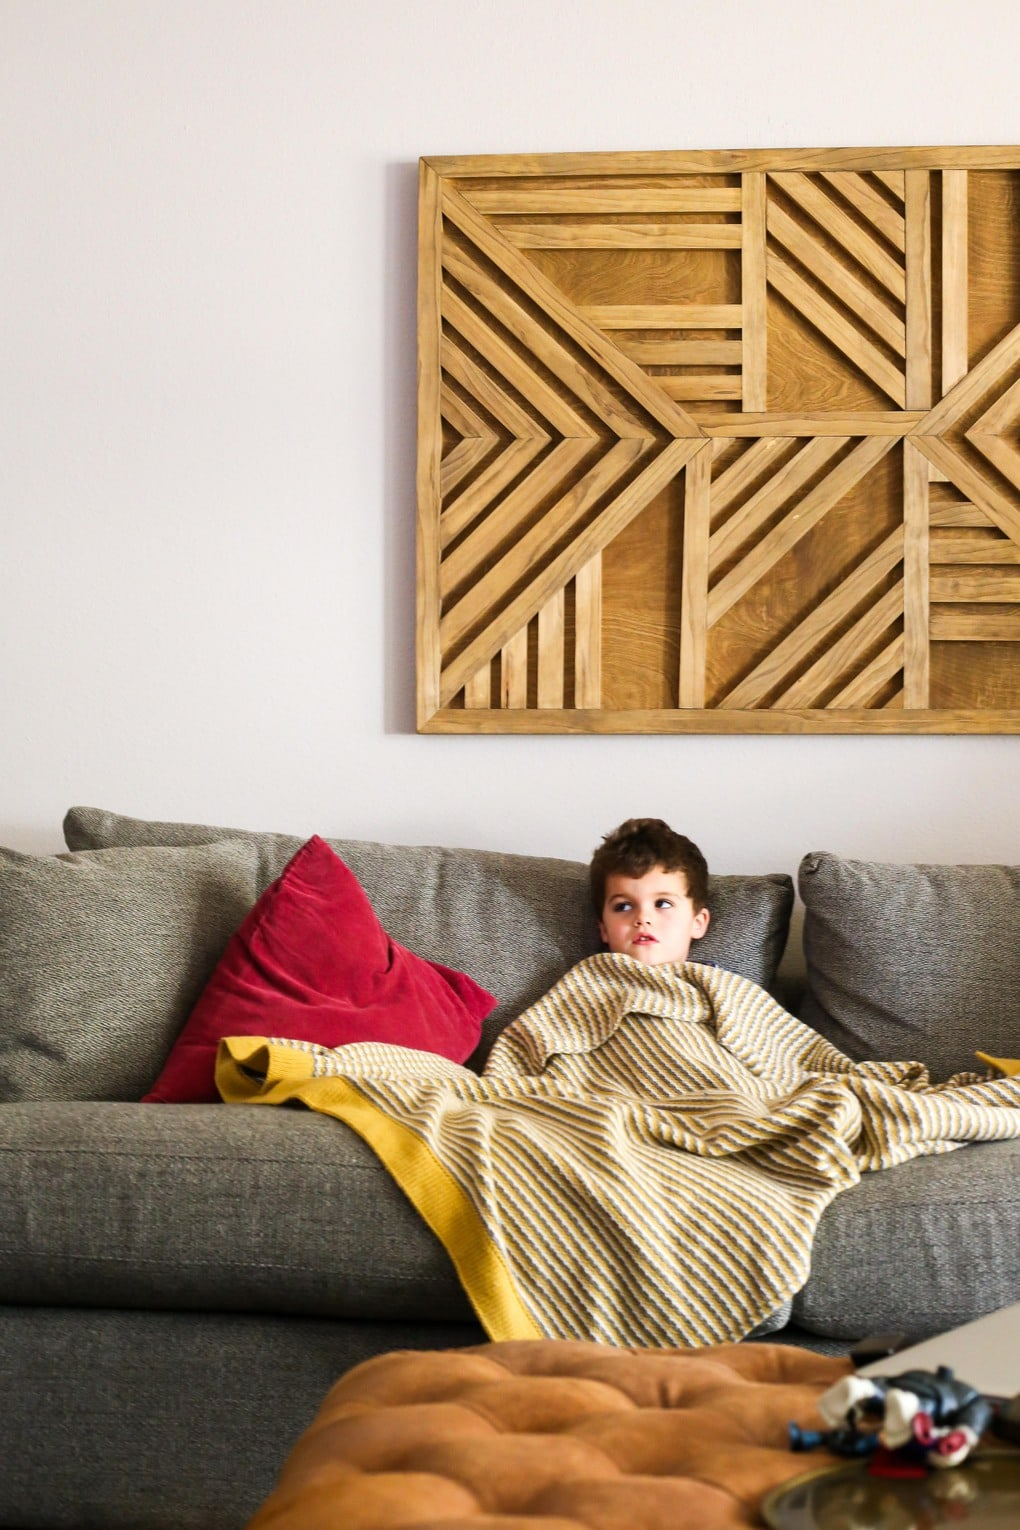 young child on couch - tips for how to enjoy winter, even when you're ready for spring